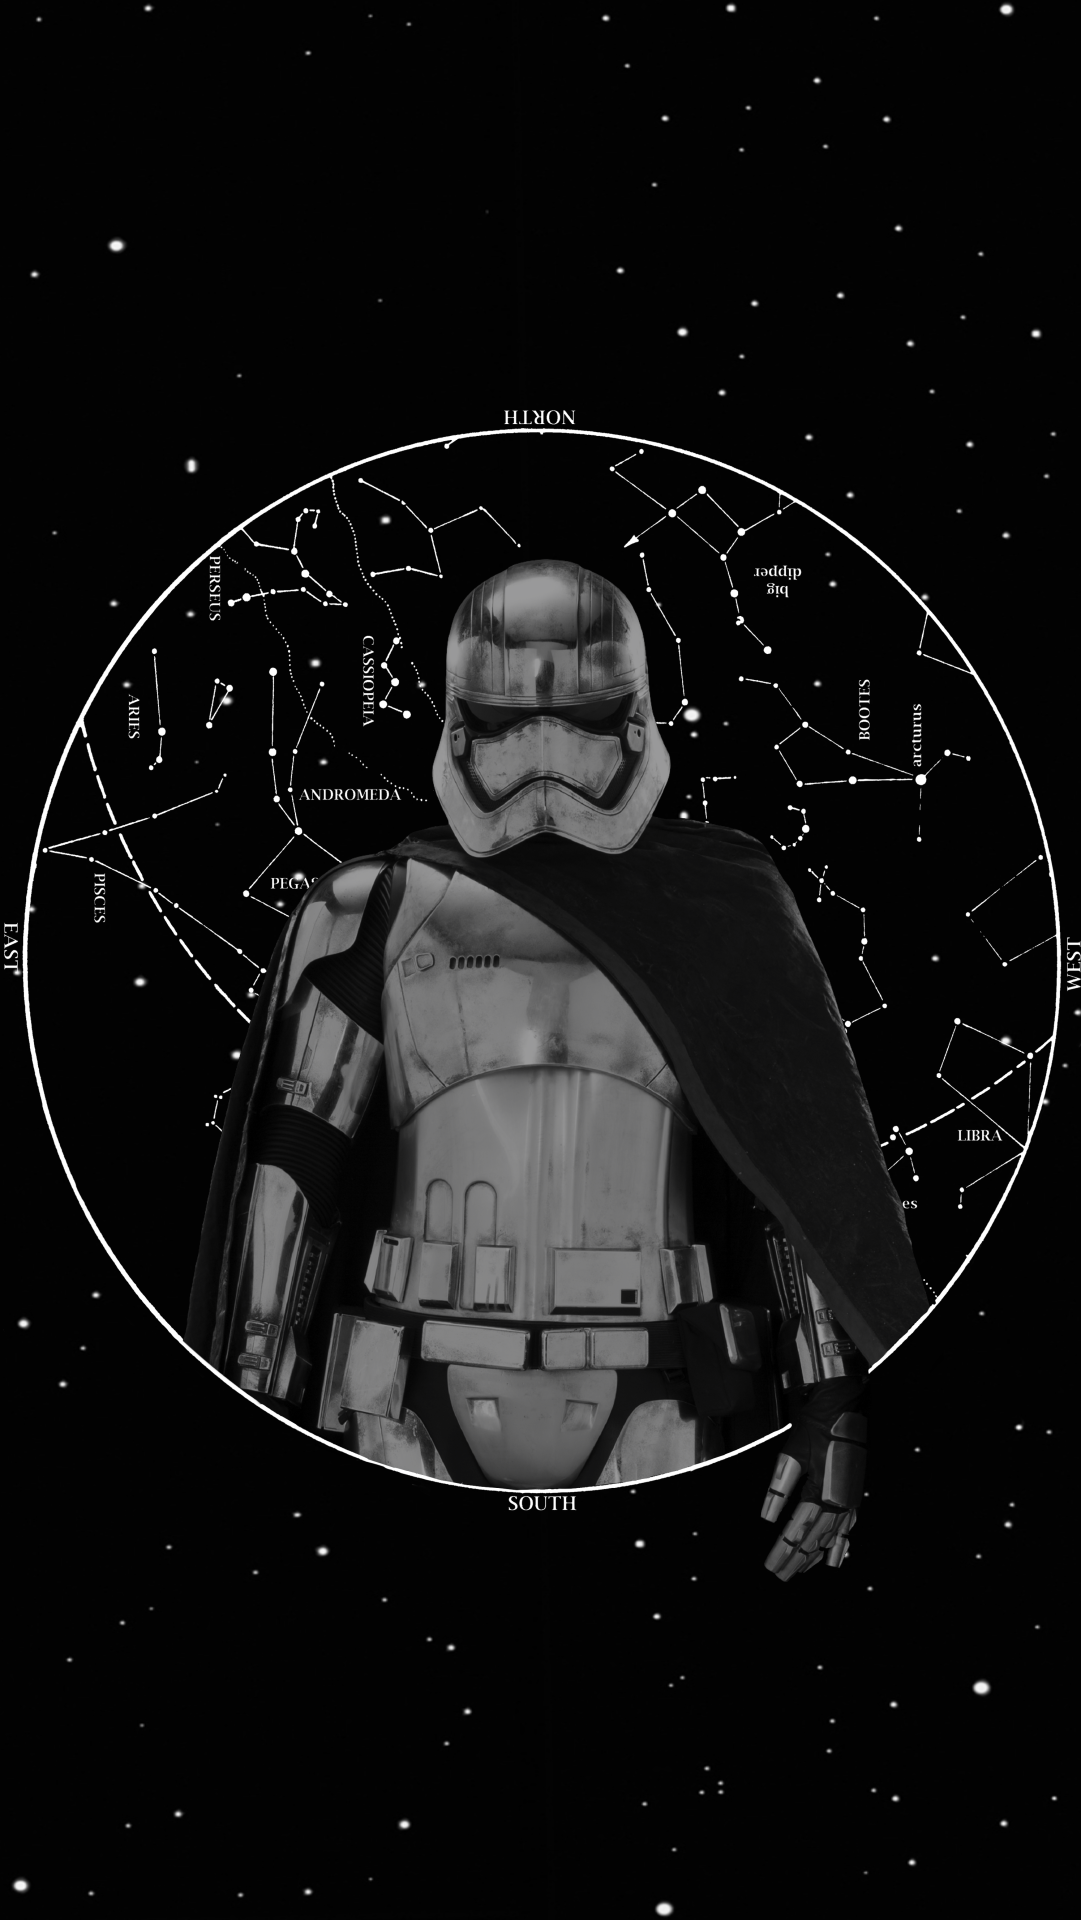 Star Wars Background Tumblr Posted By Christopher Simpson